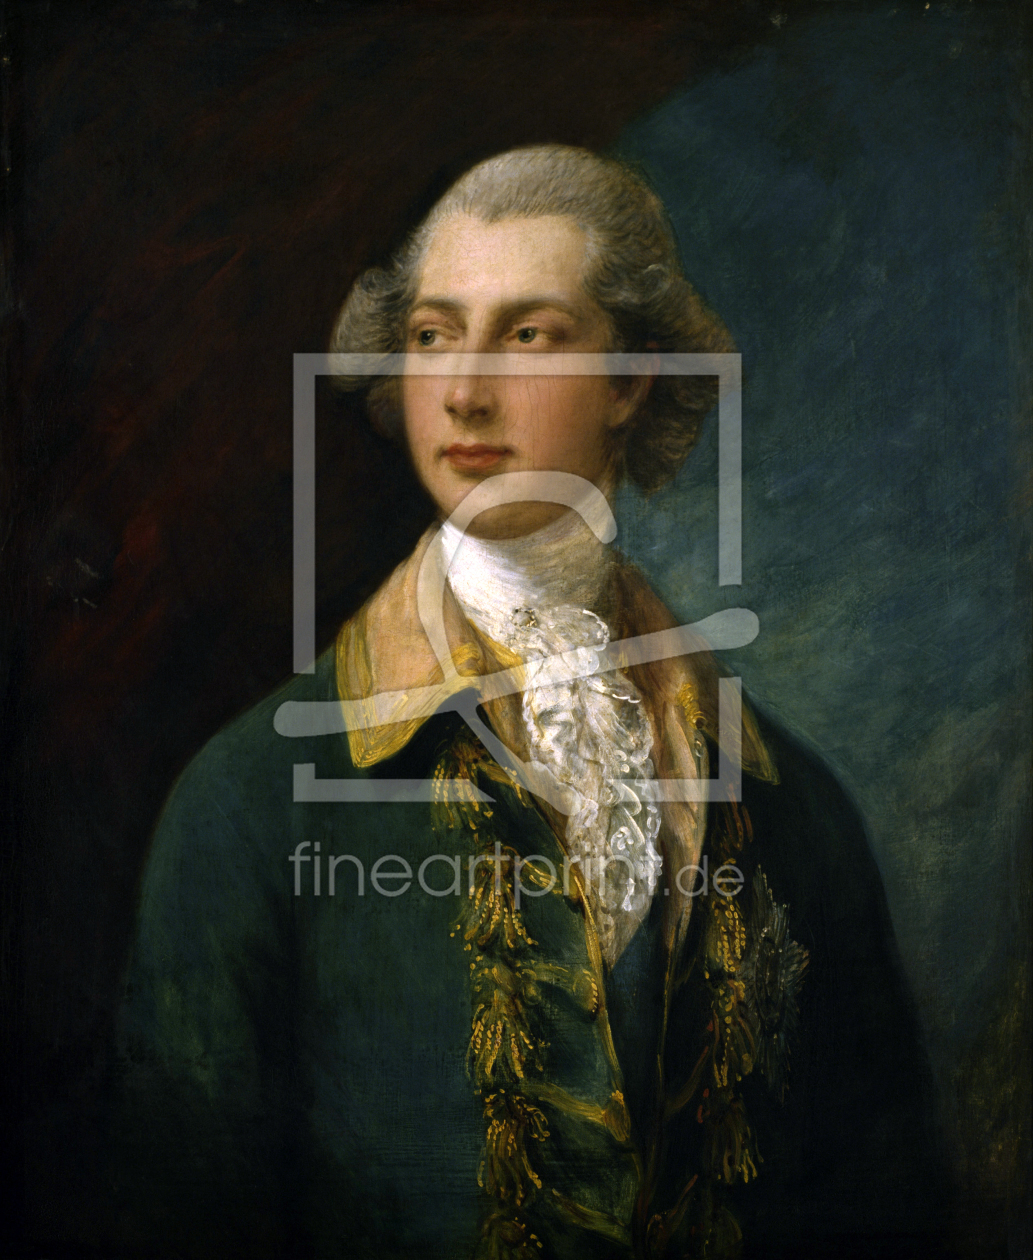 Bild-Nr.: 30001554 George IV of Great Britain /Gainsborough erstellt von Gainsborough, Thomas